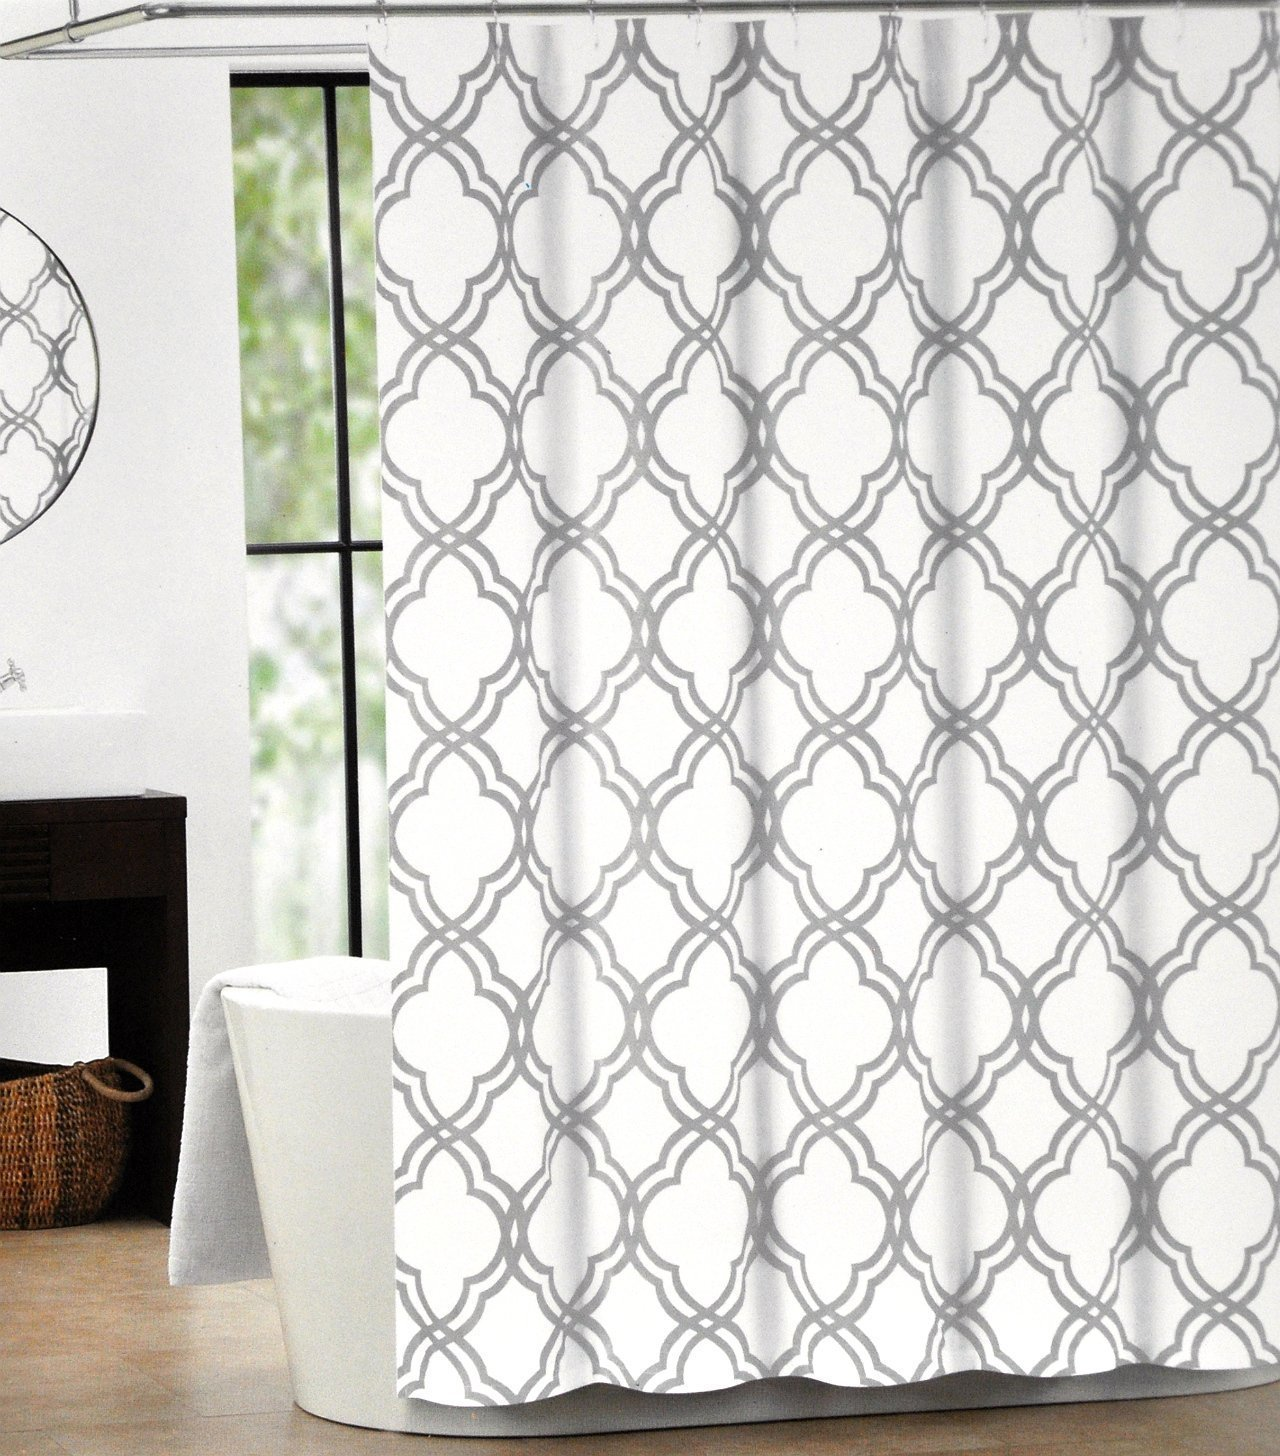 Get Quotations Max Studio Home Cotton Shower Curtain Moroccan Tile Quatrefoil Gray And White Lattice 72 Inch